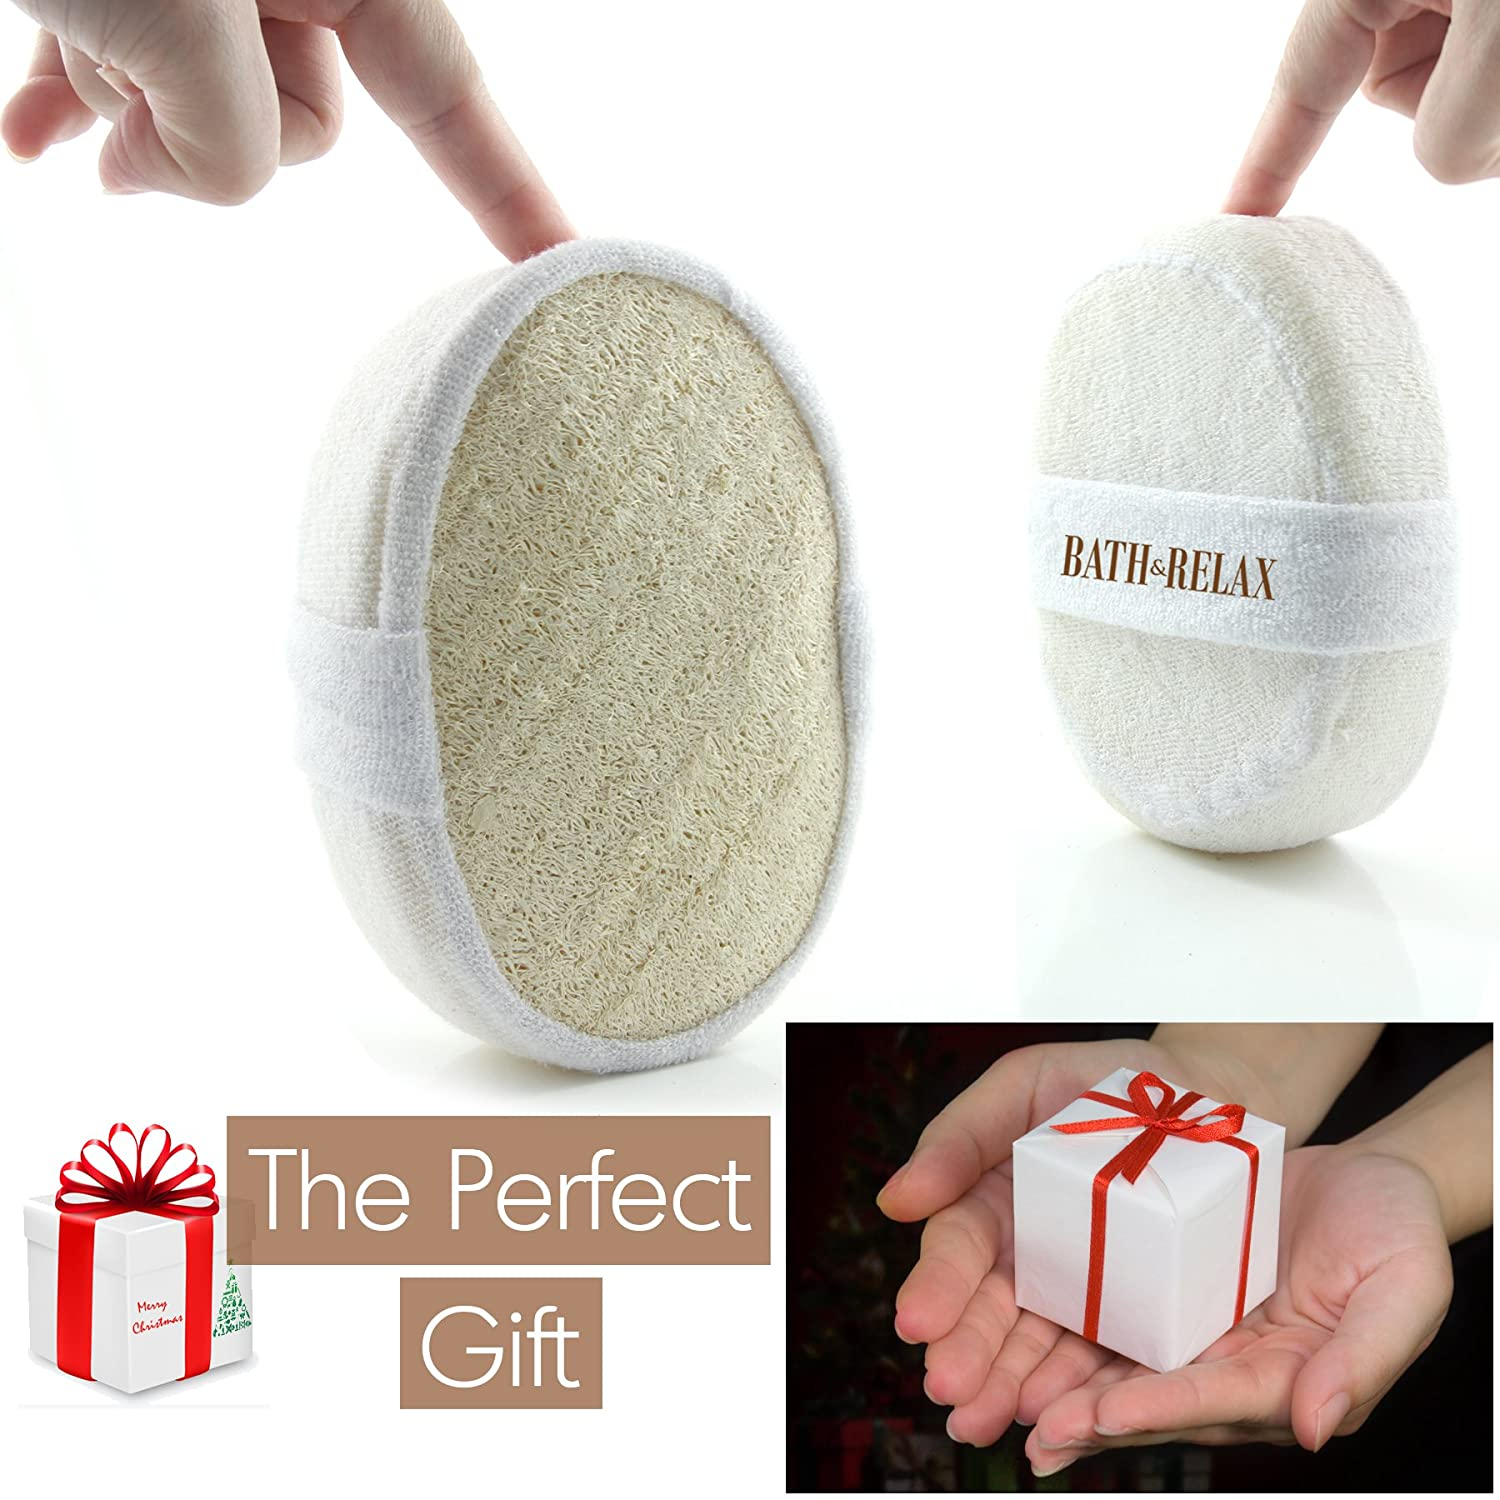 Superieur Amazon.com : Exfoliating Loofah Bath Sponge Pads Pack Of 4   Ultra Thick,  Great For Exfoliating Shower   100% Natural   Best Luffa Sponge And Spa  Scrubber ...